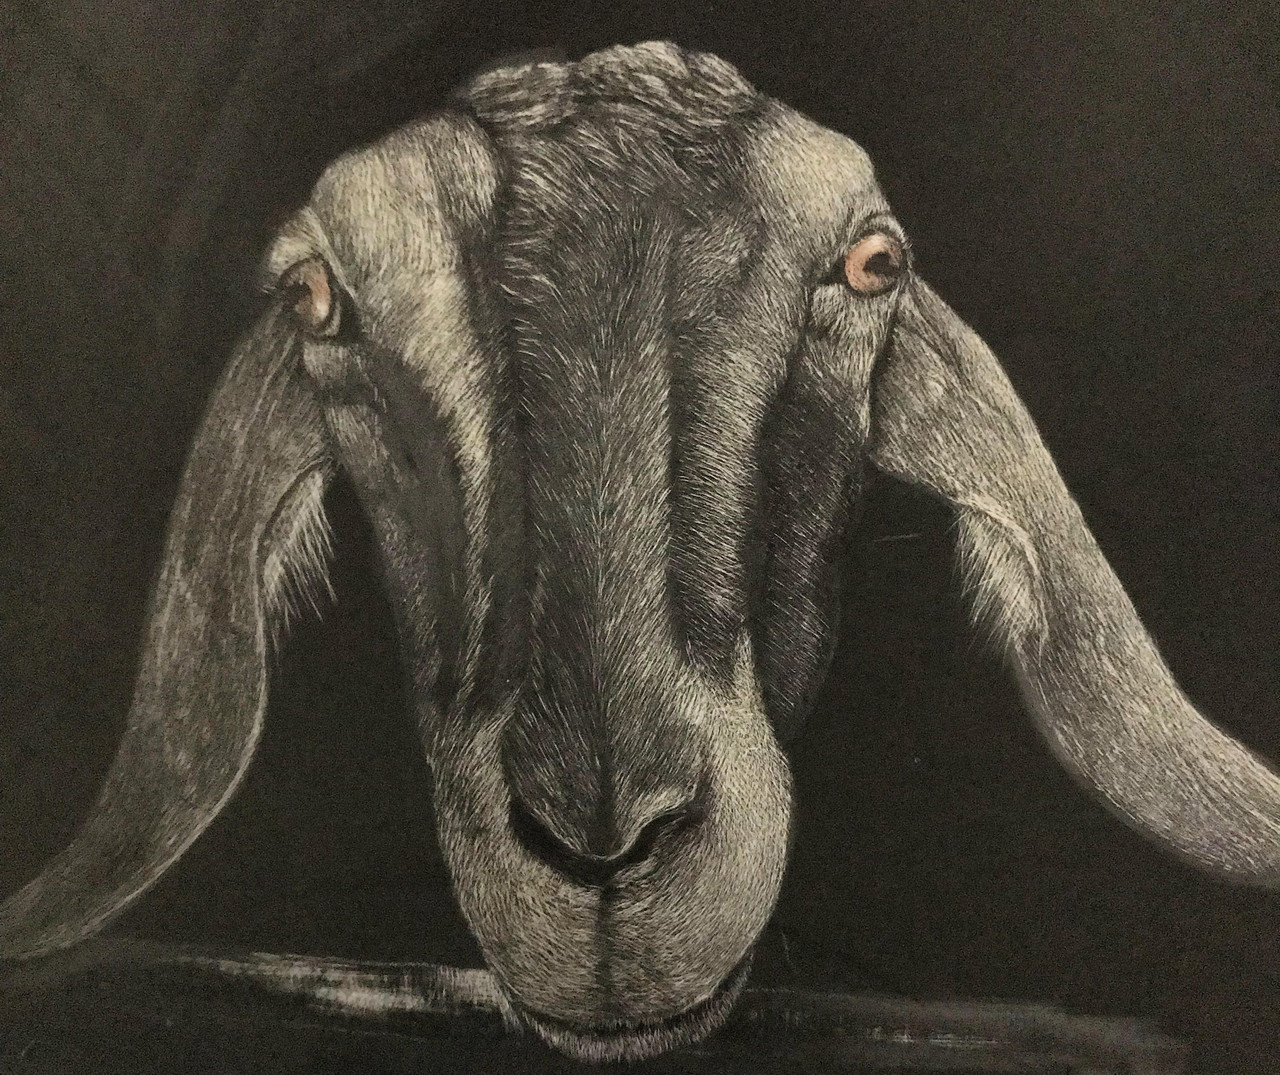 One I'm working on of my daughter's goat